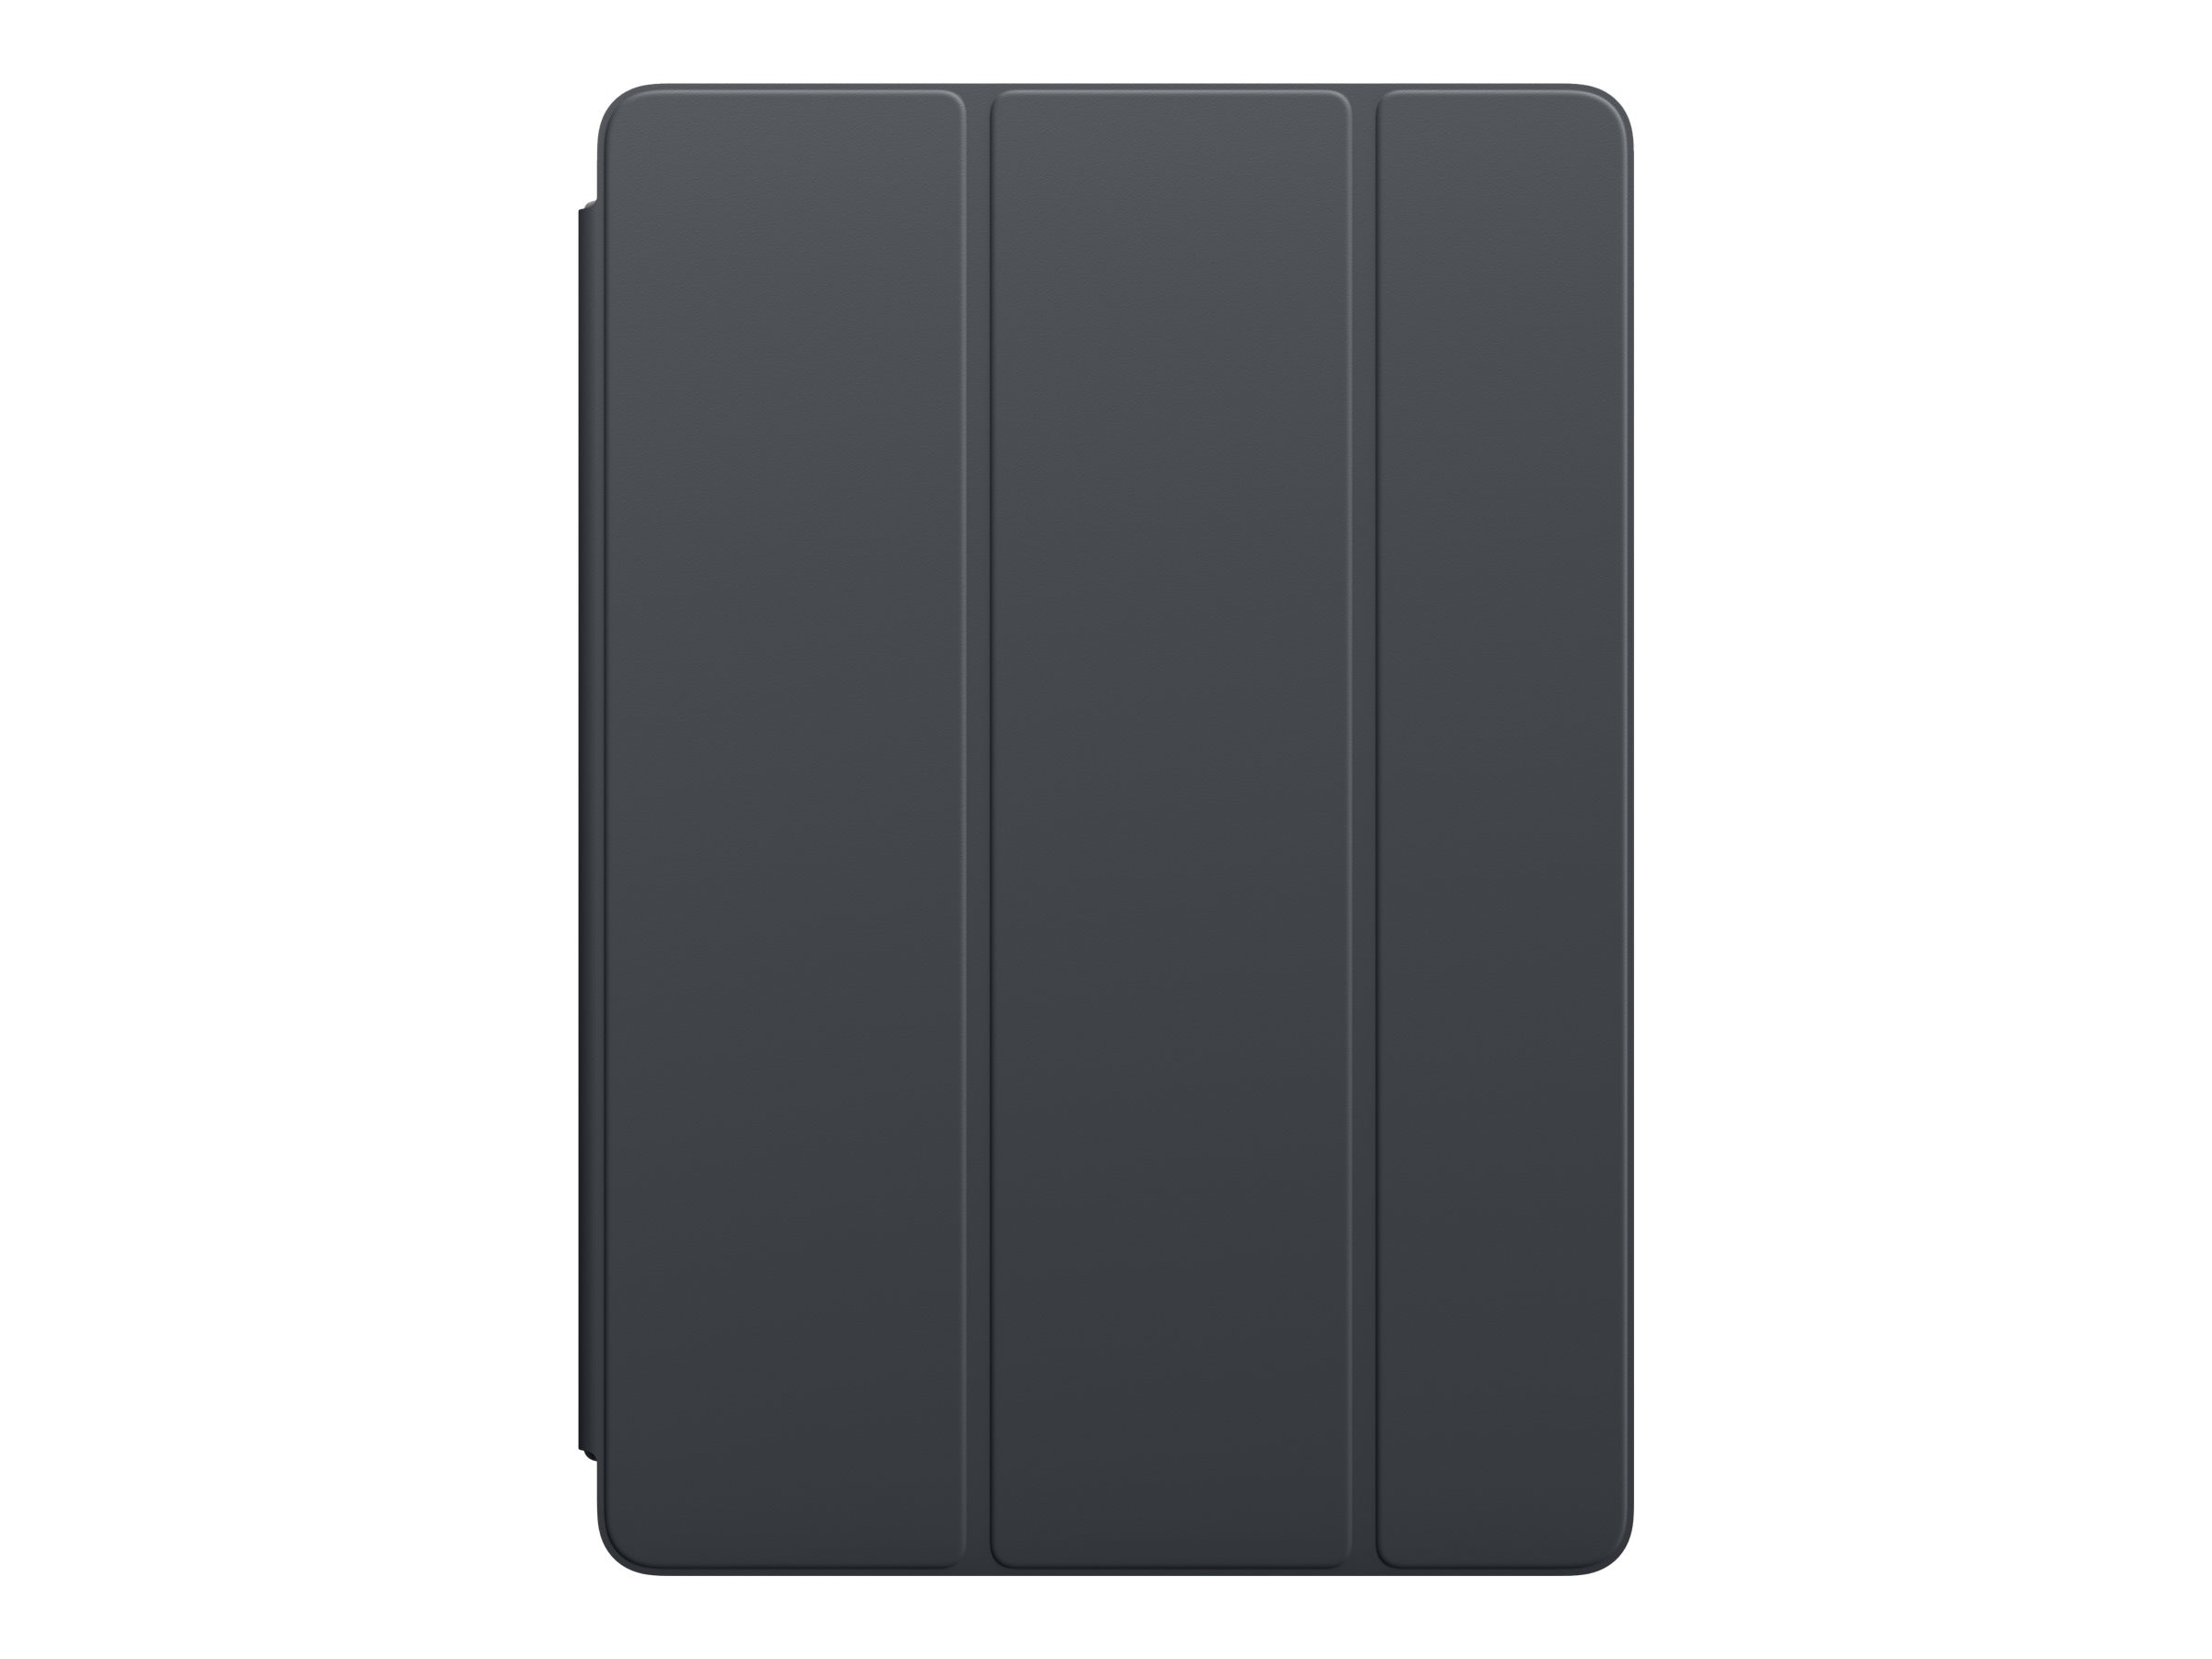 Apple Smart Cover for 10.5 iPad Pro, Charcoal Gray